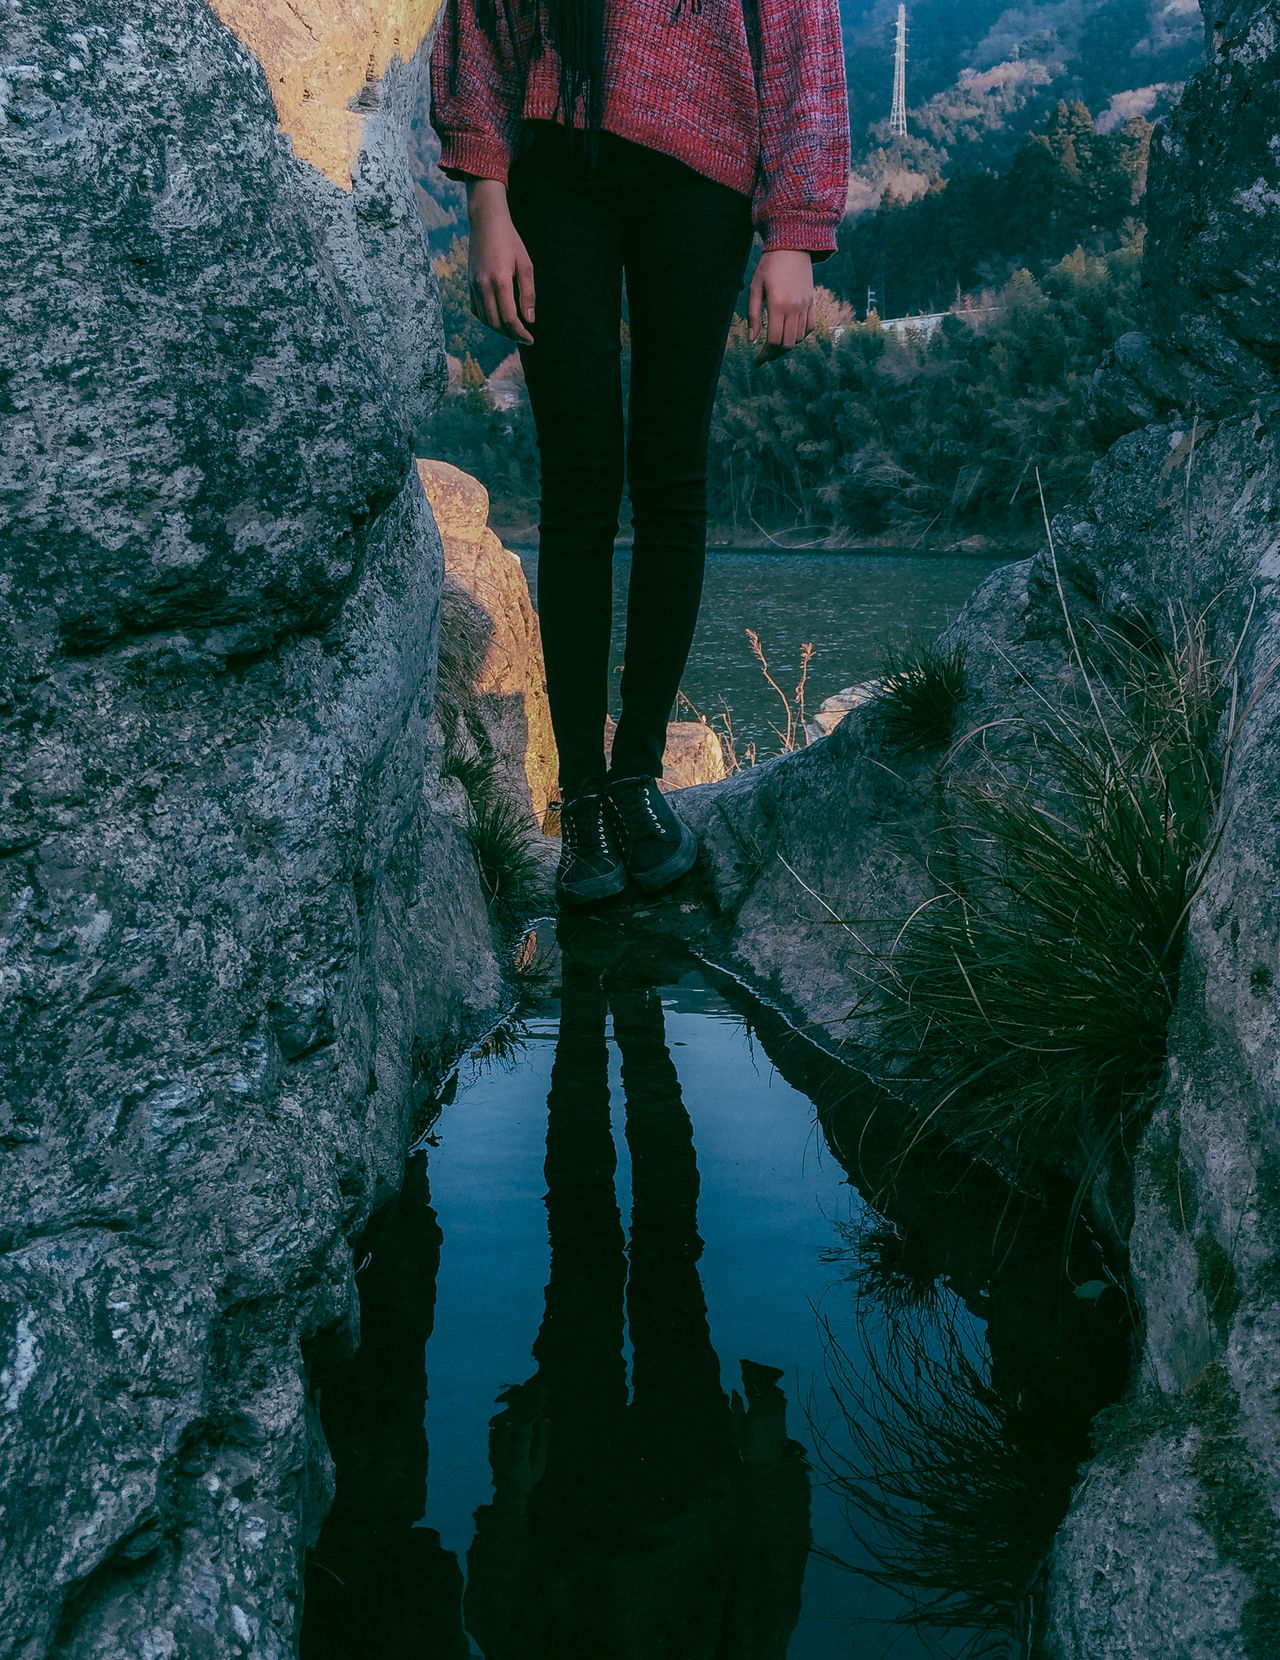 // paused // Beauty In Nature Blue Day Girl Human Leg Lake Lifestyles Live For The Story Low Section Mirror Nature One Person Outdoors Real People Reflection Reflection_collection Reflections Rock - Object Shootermag Shootermagazine Standing The Great Outdoors - 2017 EyeEm Awards Walking Water Women